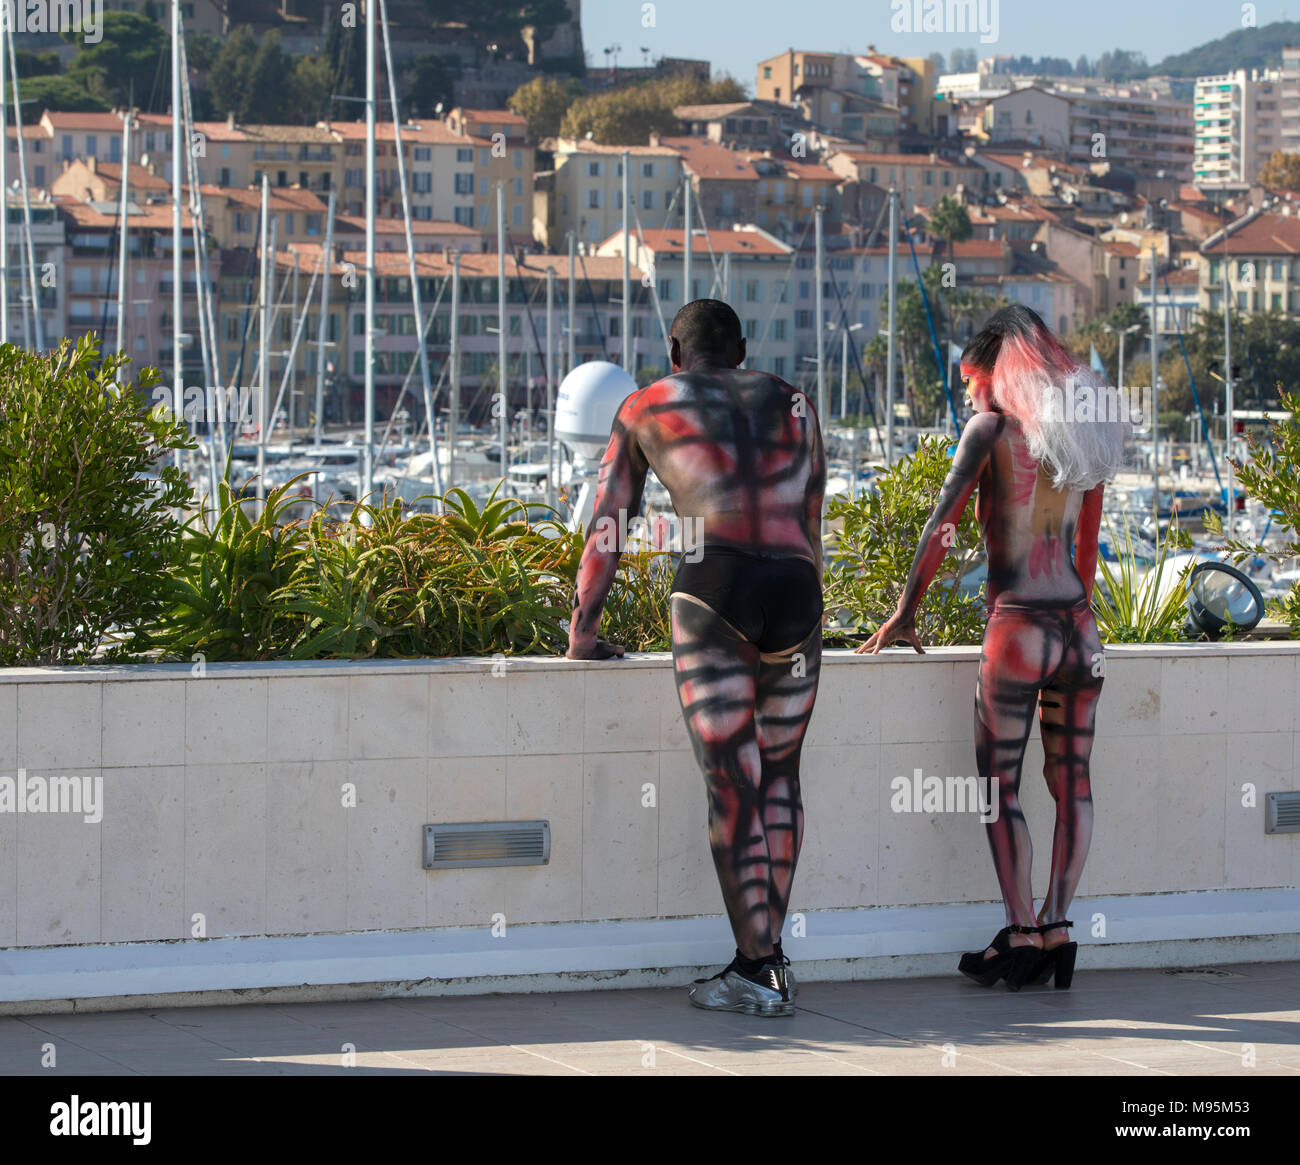 Performing body painting on women and man - Stock Image